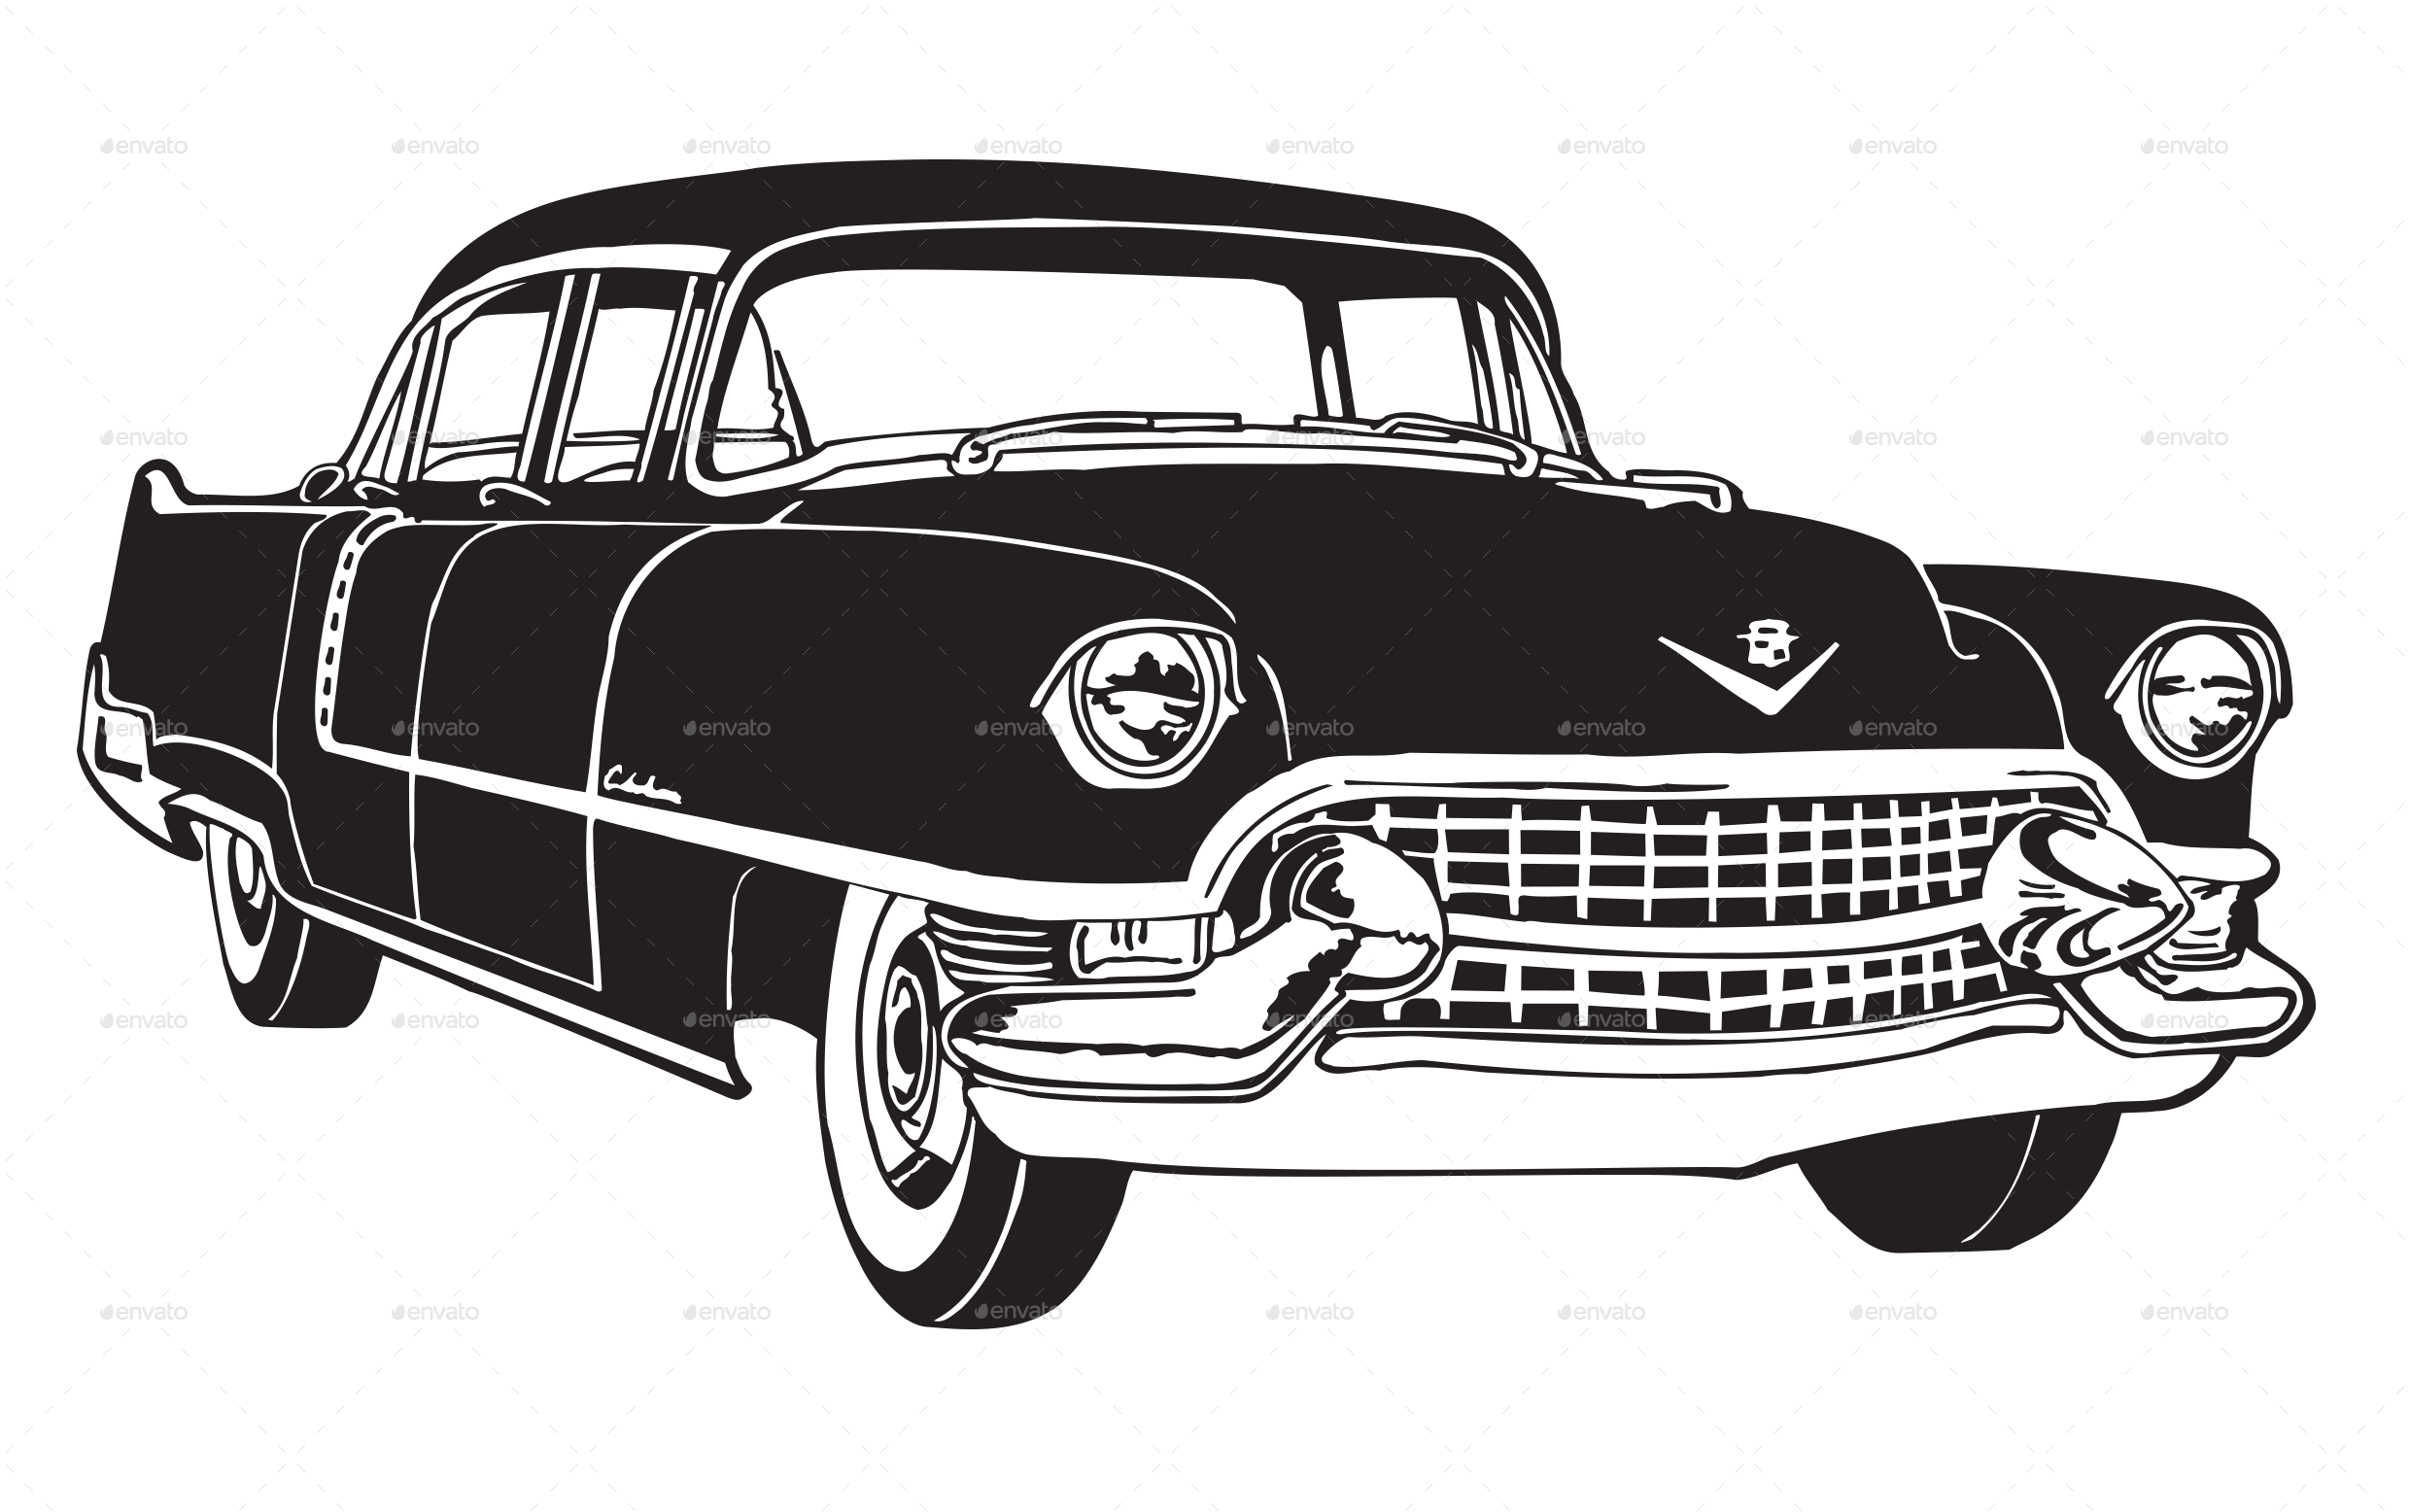 Jalopy car clipart clipart black and white stock 20.png (2480×1556) | Vehicles | Pinterest | Vehicle and Cars clipart black and white stock